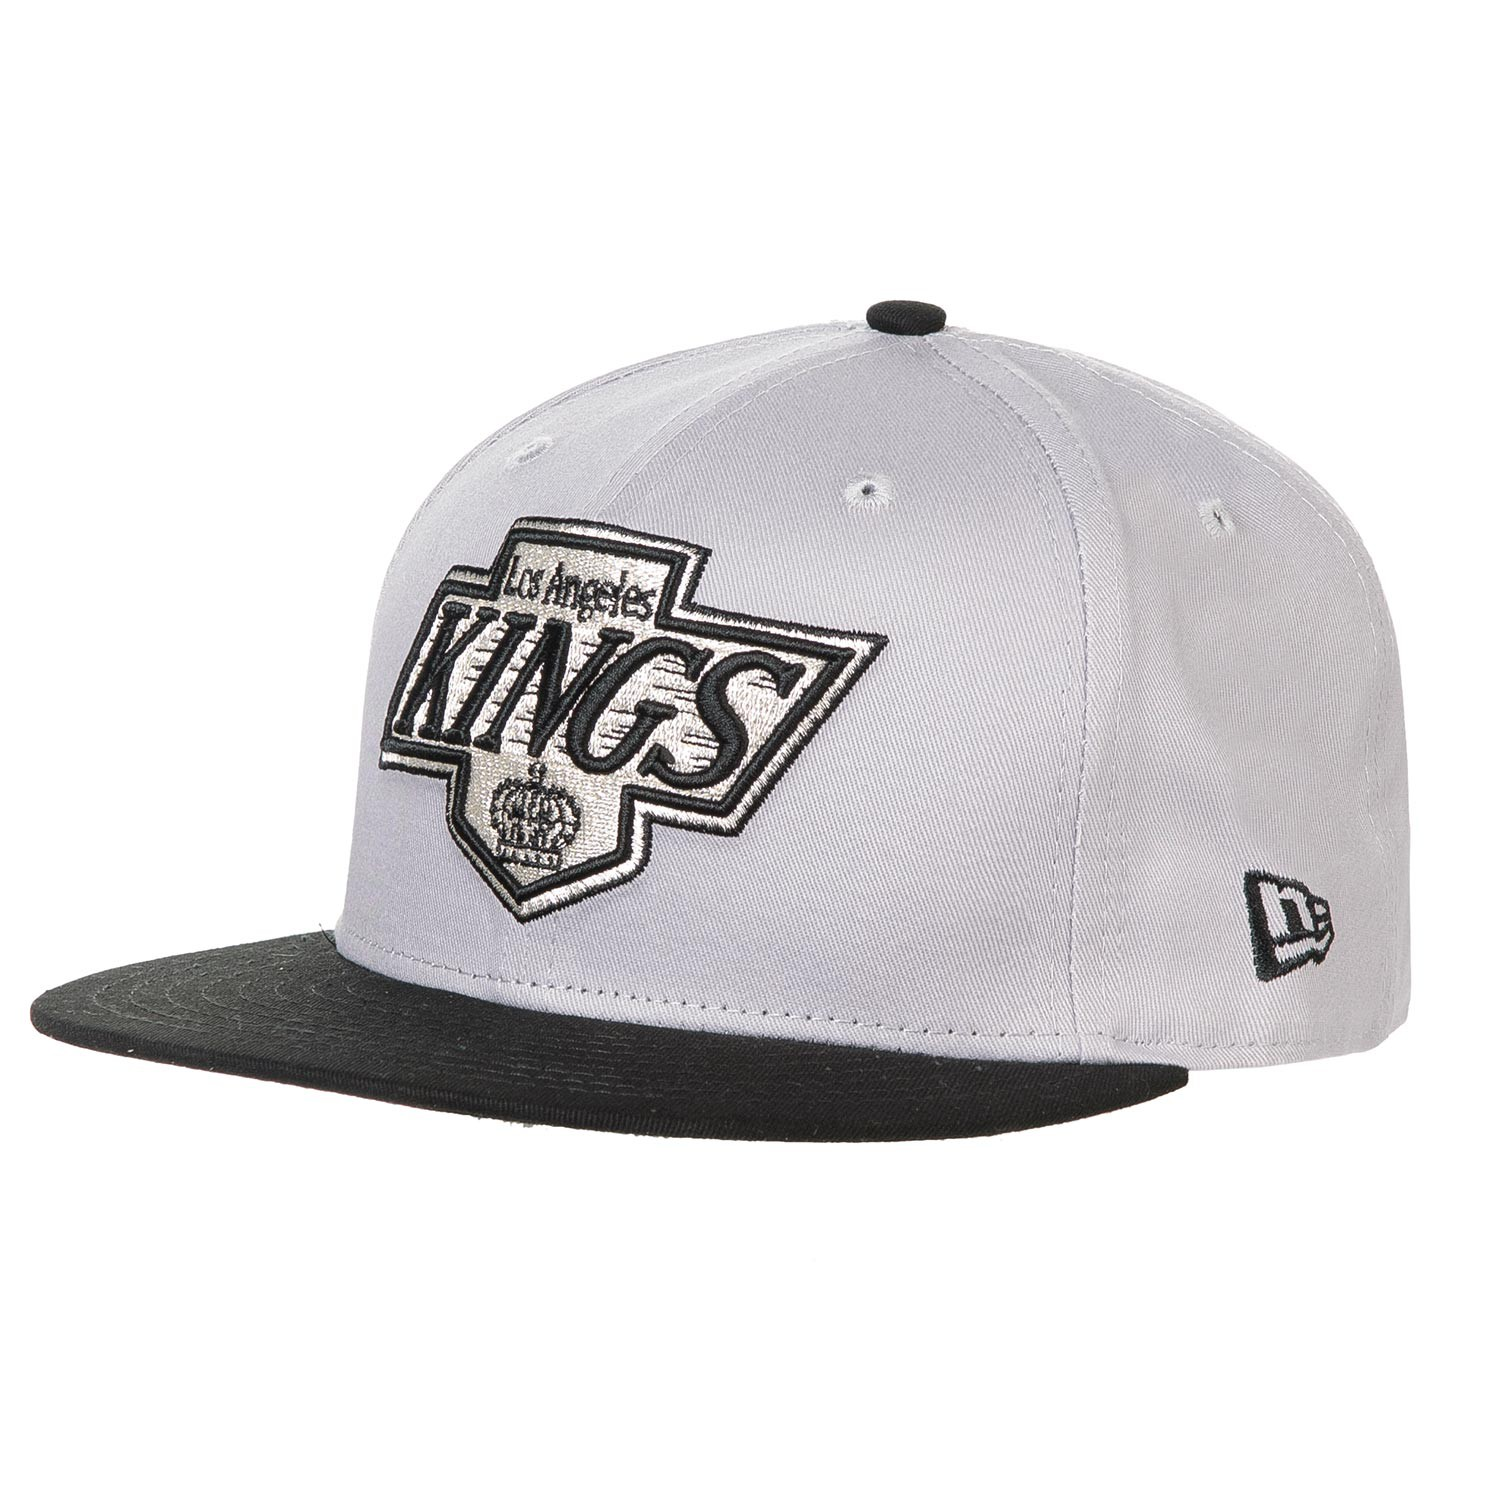 Kšiltovka New Era Los Angeles Kings 9Fifty Nhl Co. grey/black